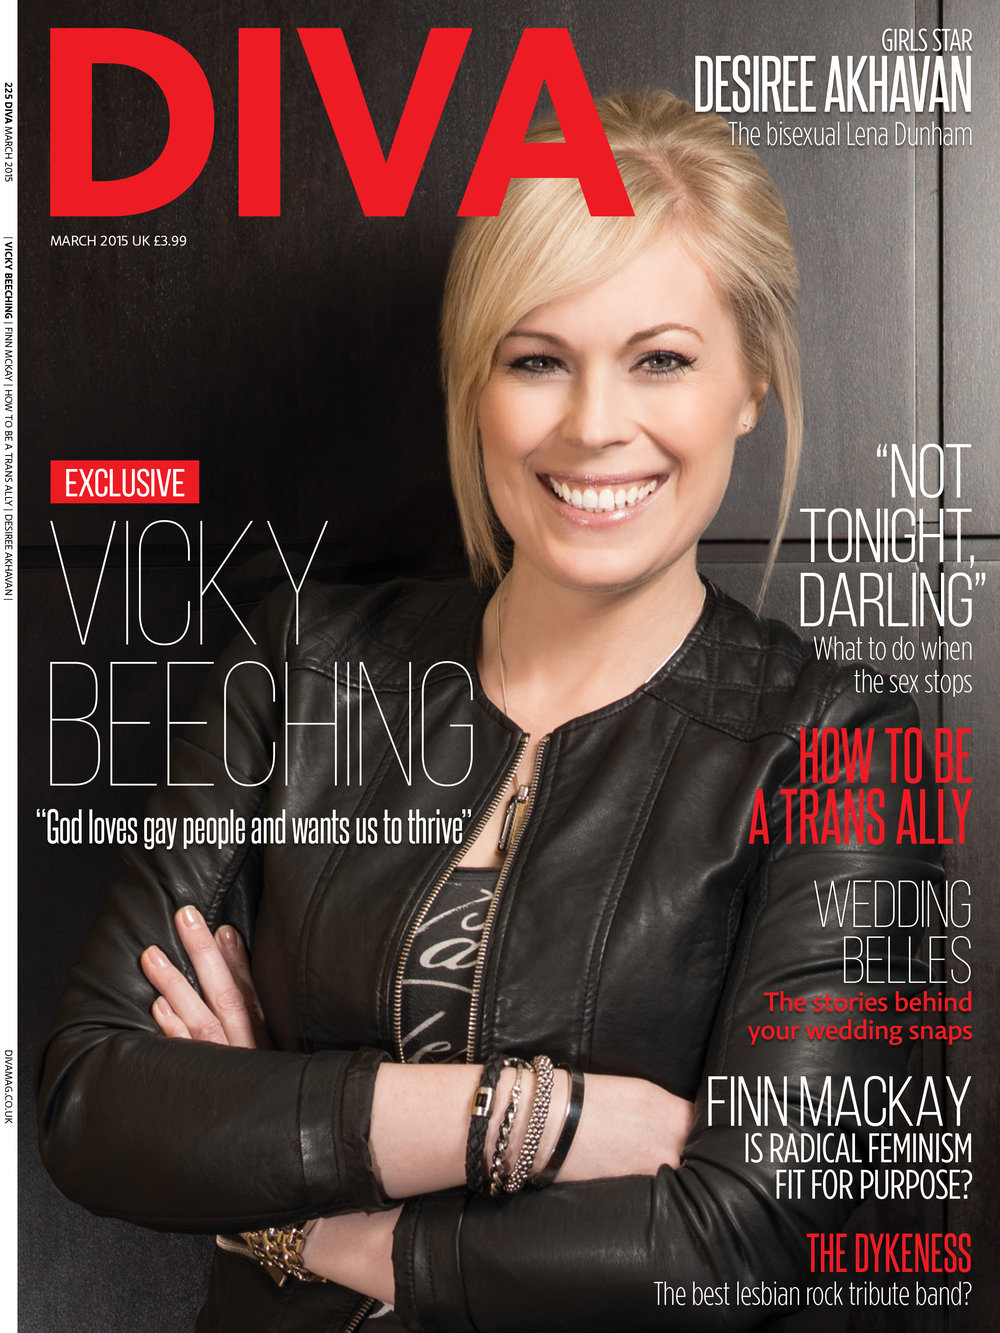 Tear Sheets - 1 - DIVA Magazine March 2015 - Newsstand Edition.jpg